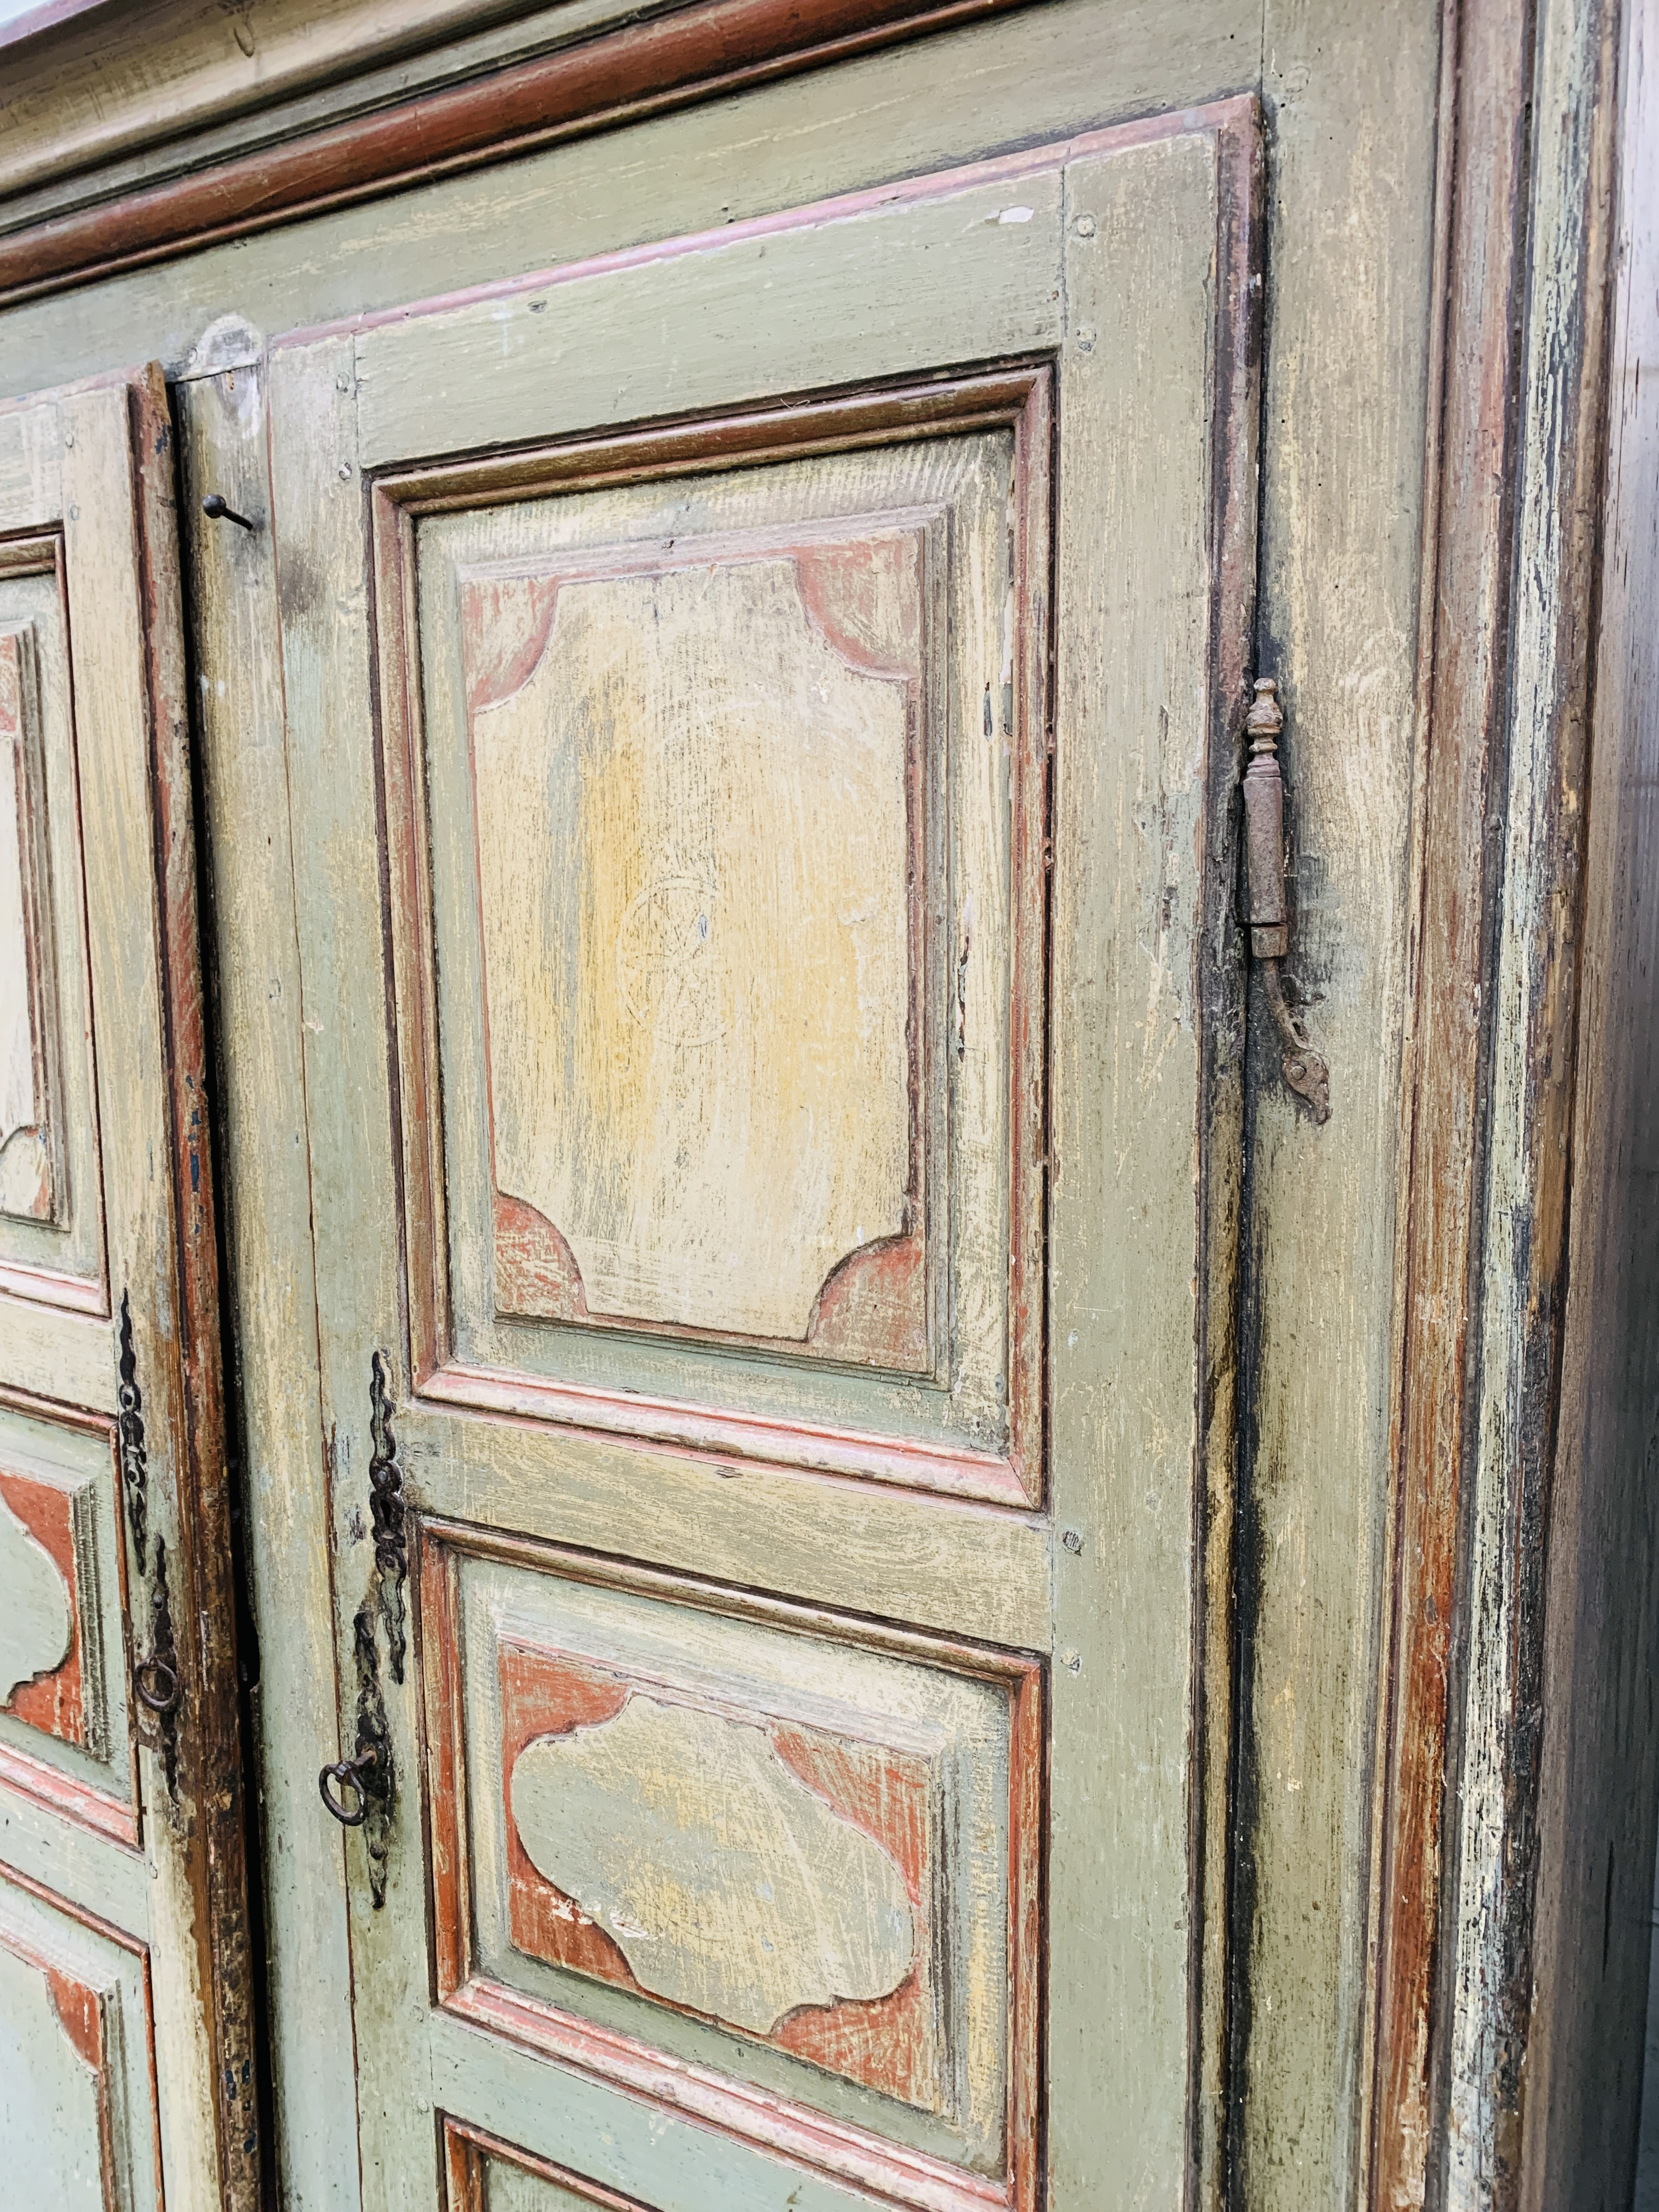 Mid-19th century French painted pine wardrobe - Image 7 of 8